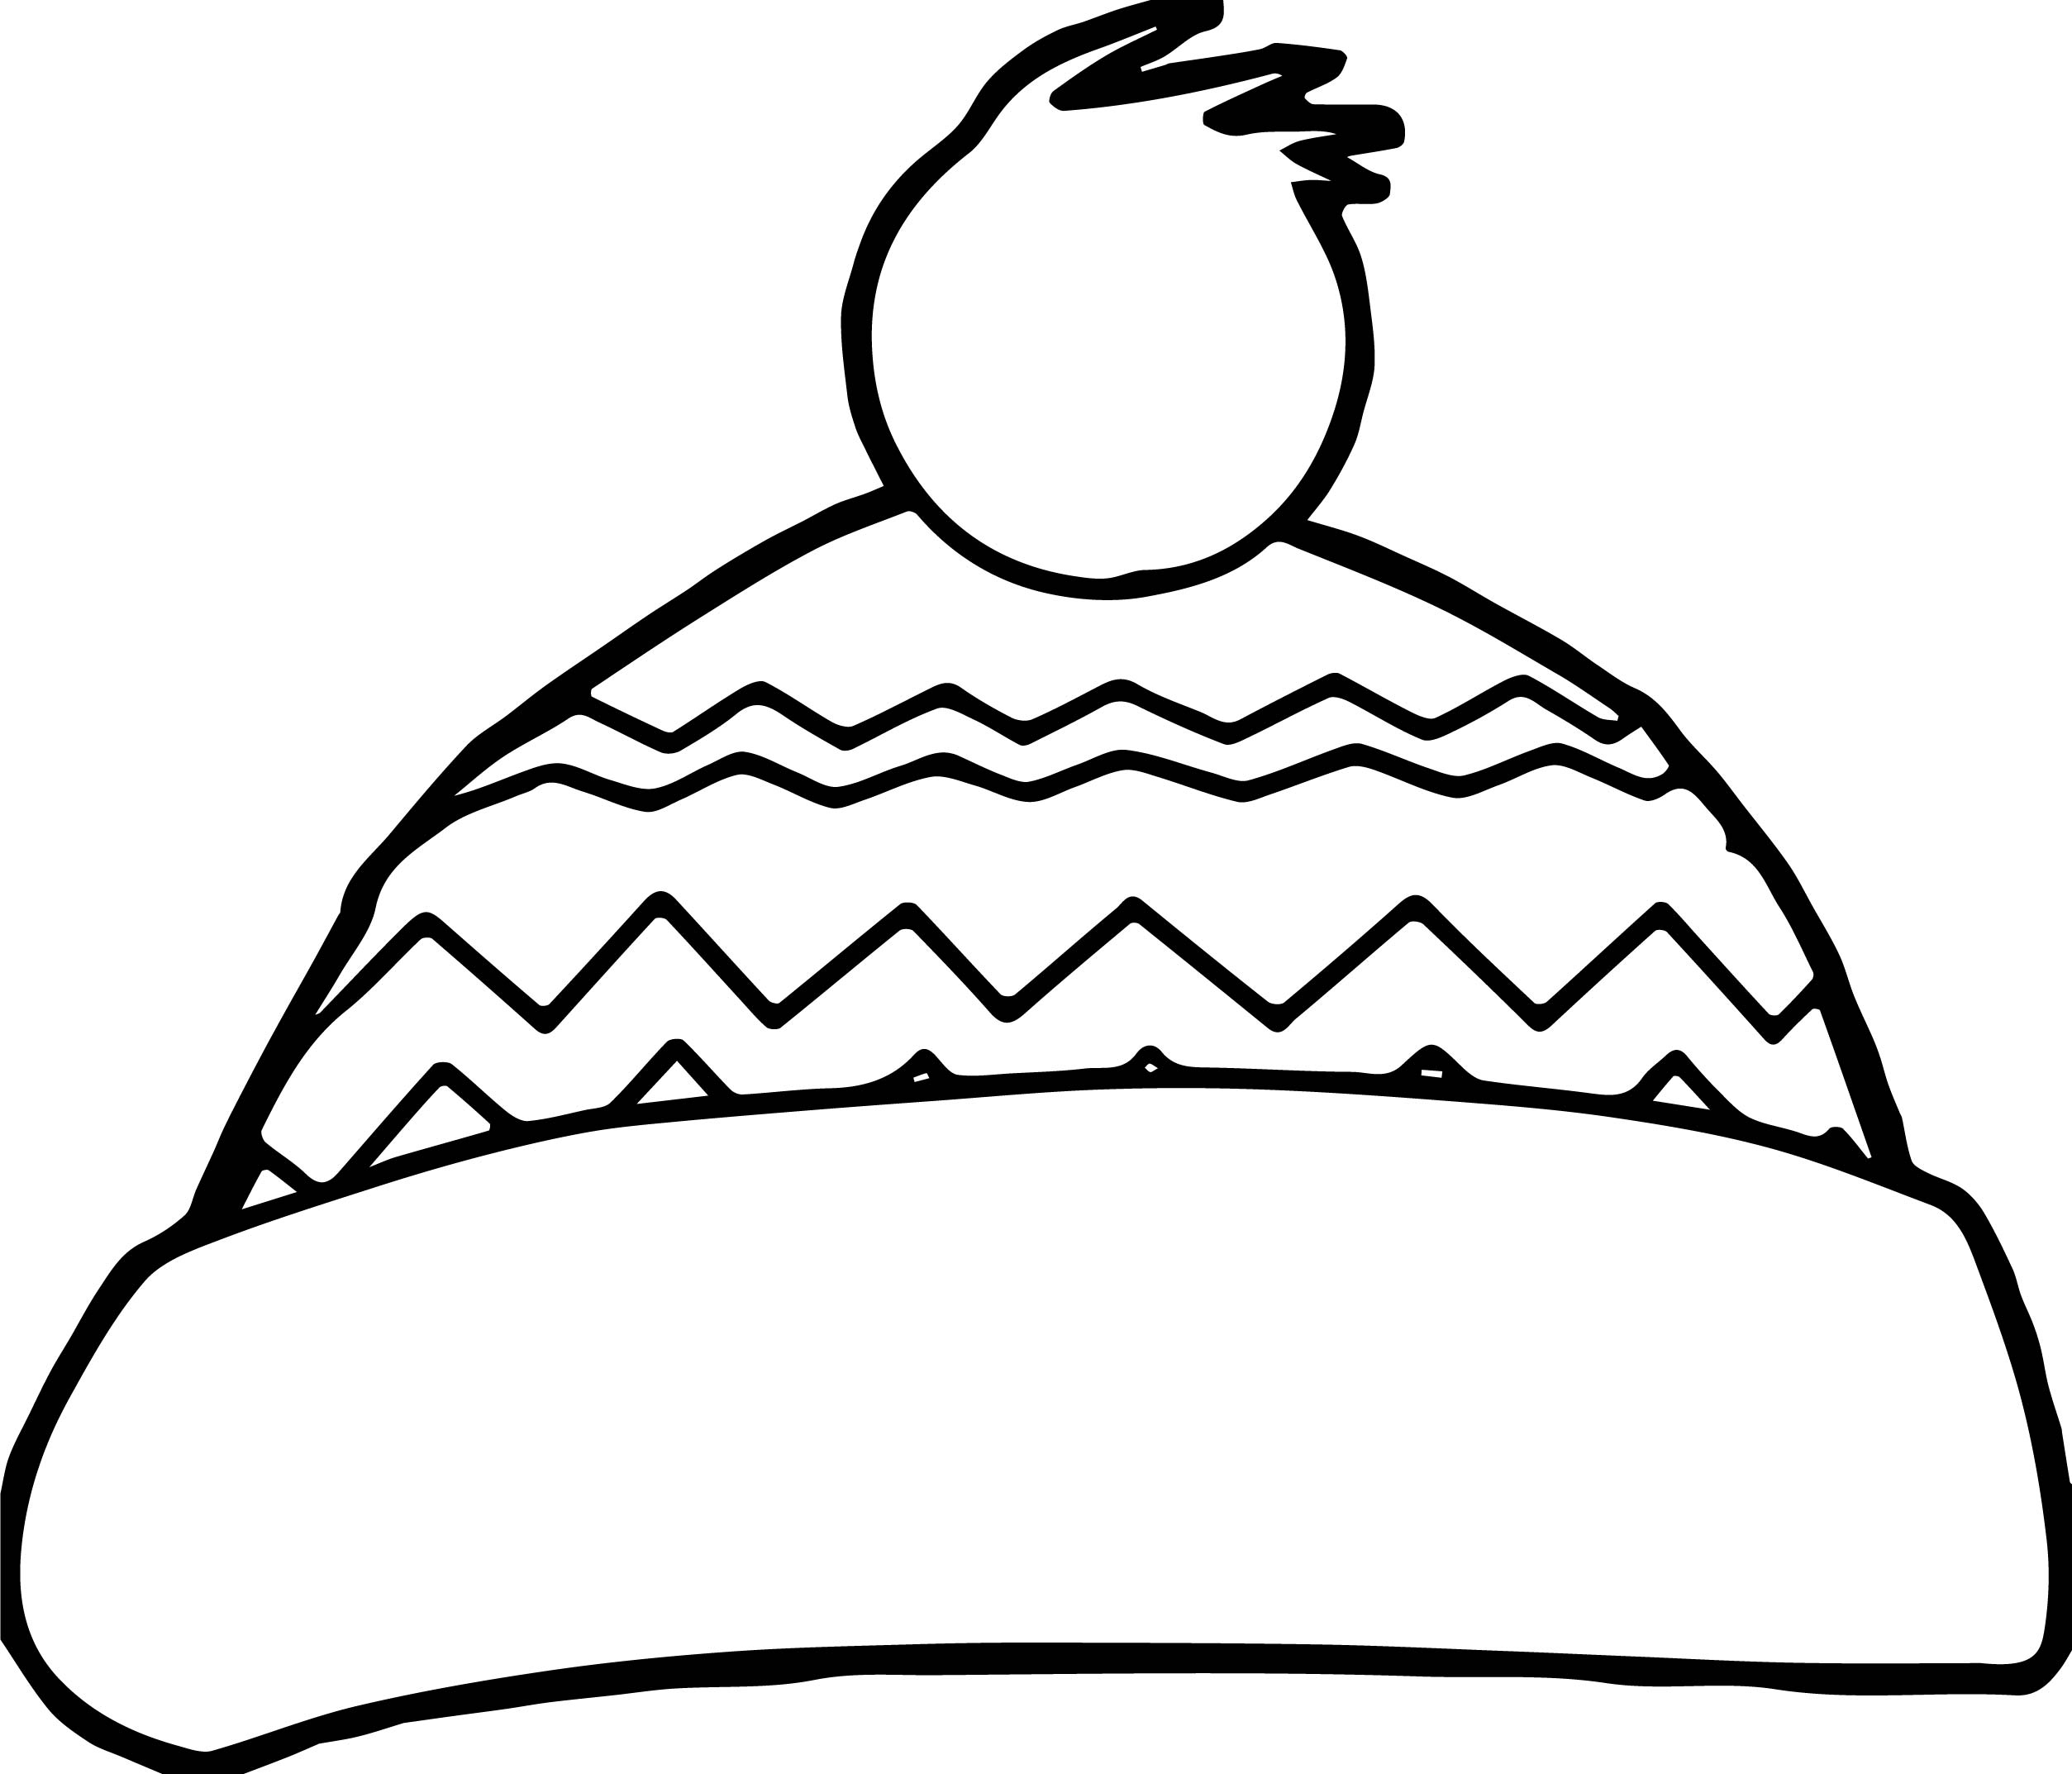 Santa Hat Coloring Page With Printable Pages For Kids Cool2bKids In